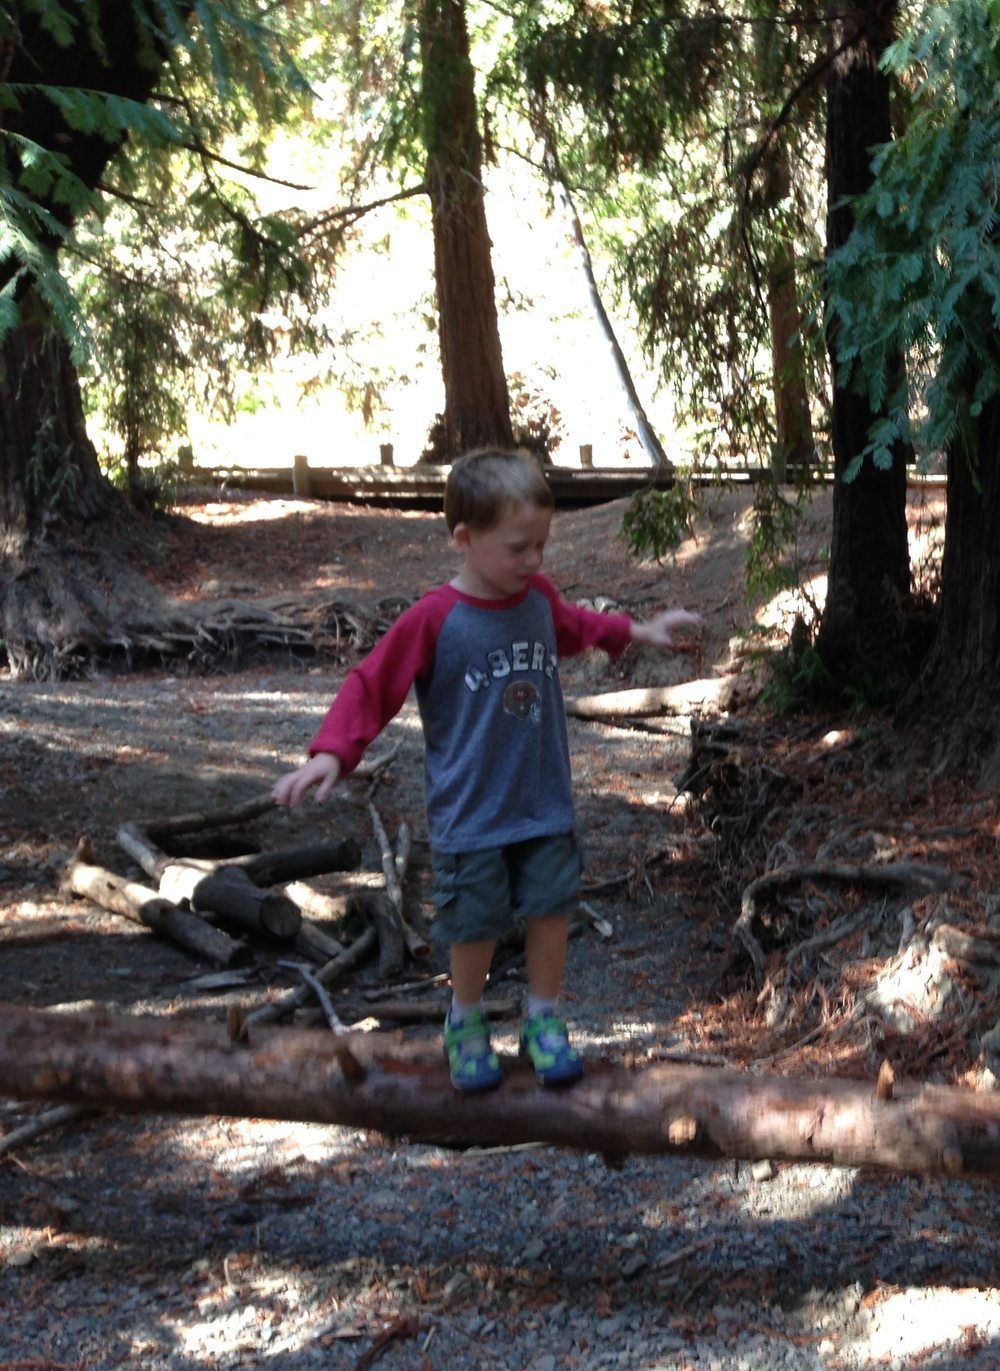 Walking across fallen logs at the Redwood Nature Preserve in Los Altos